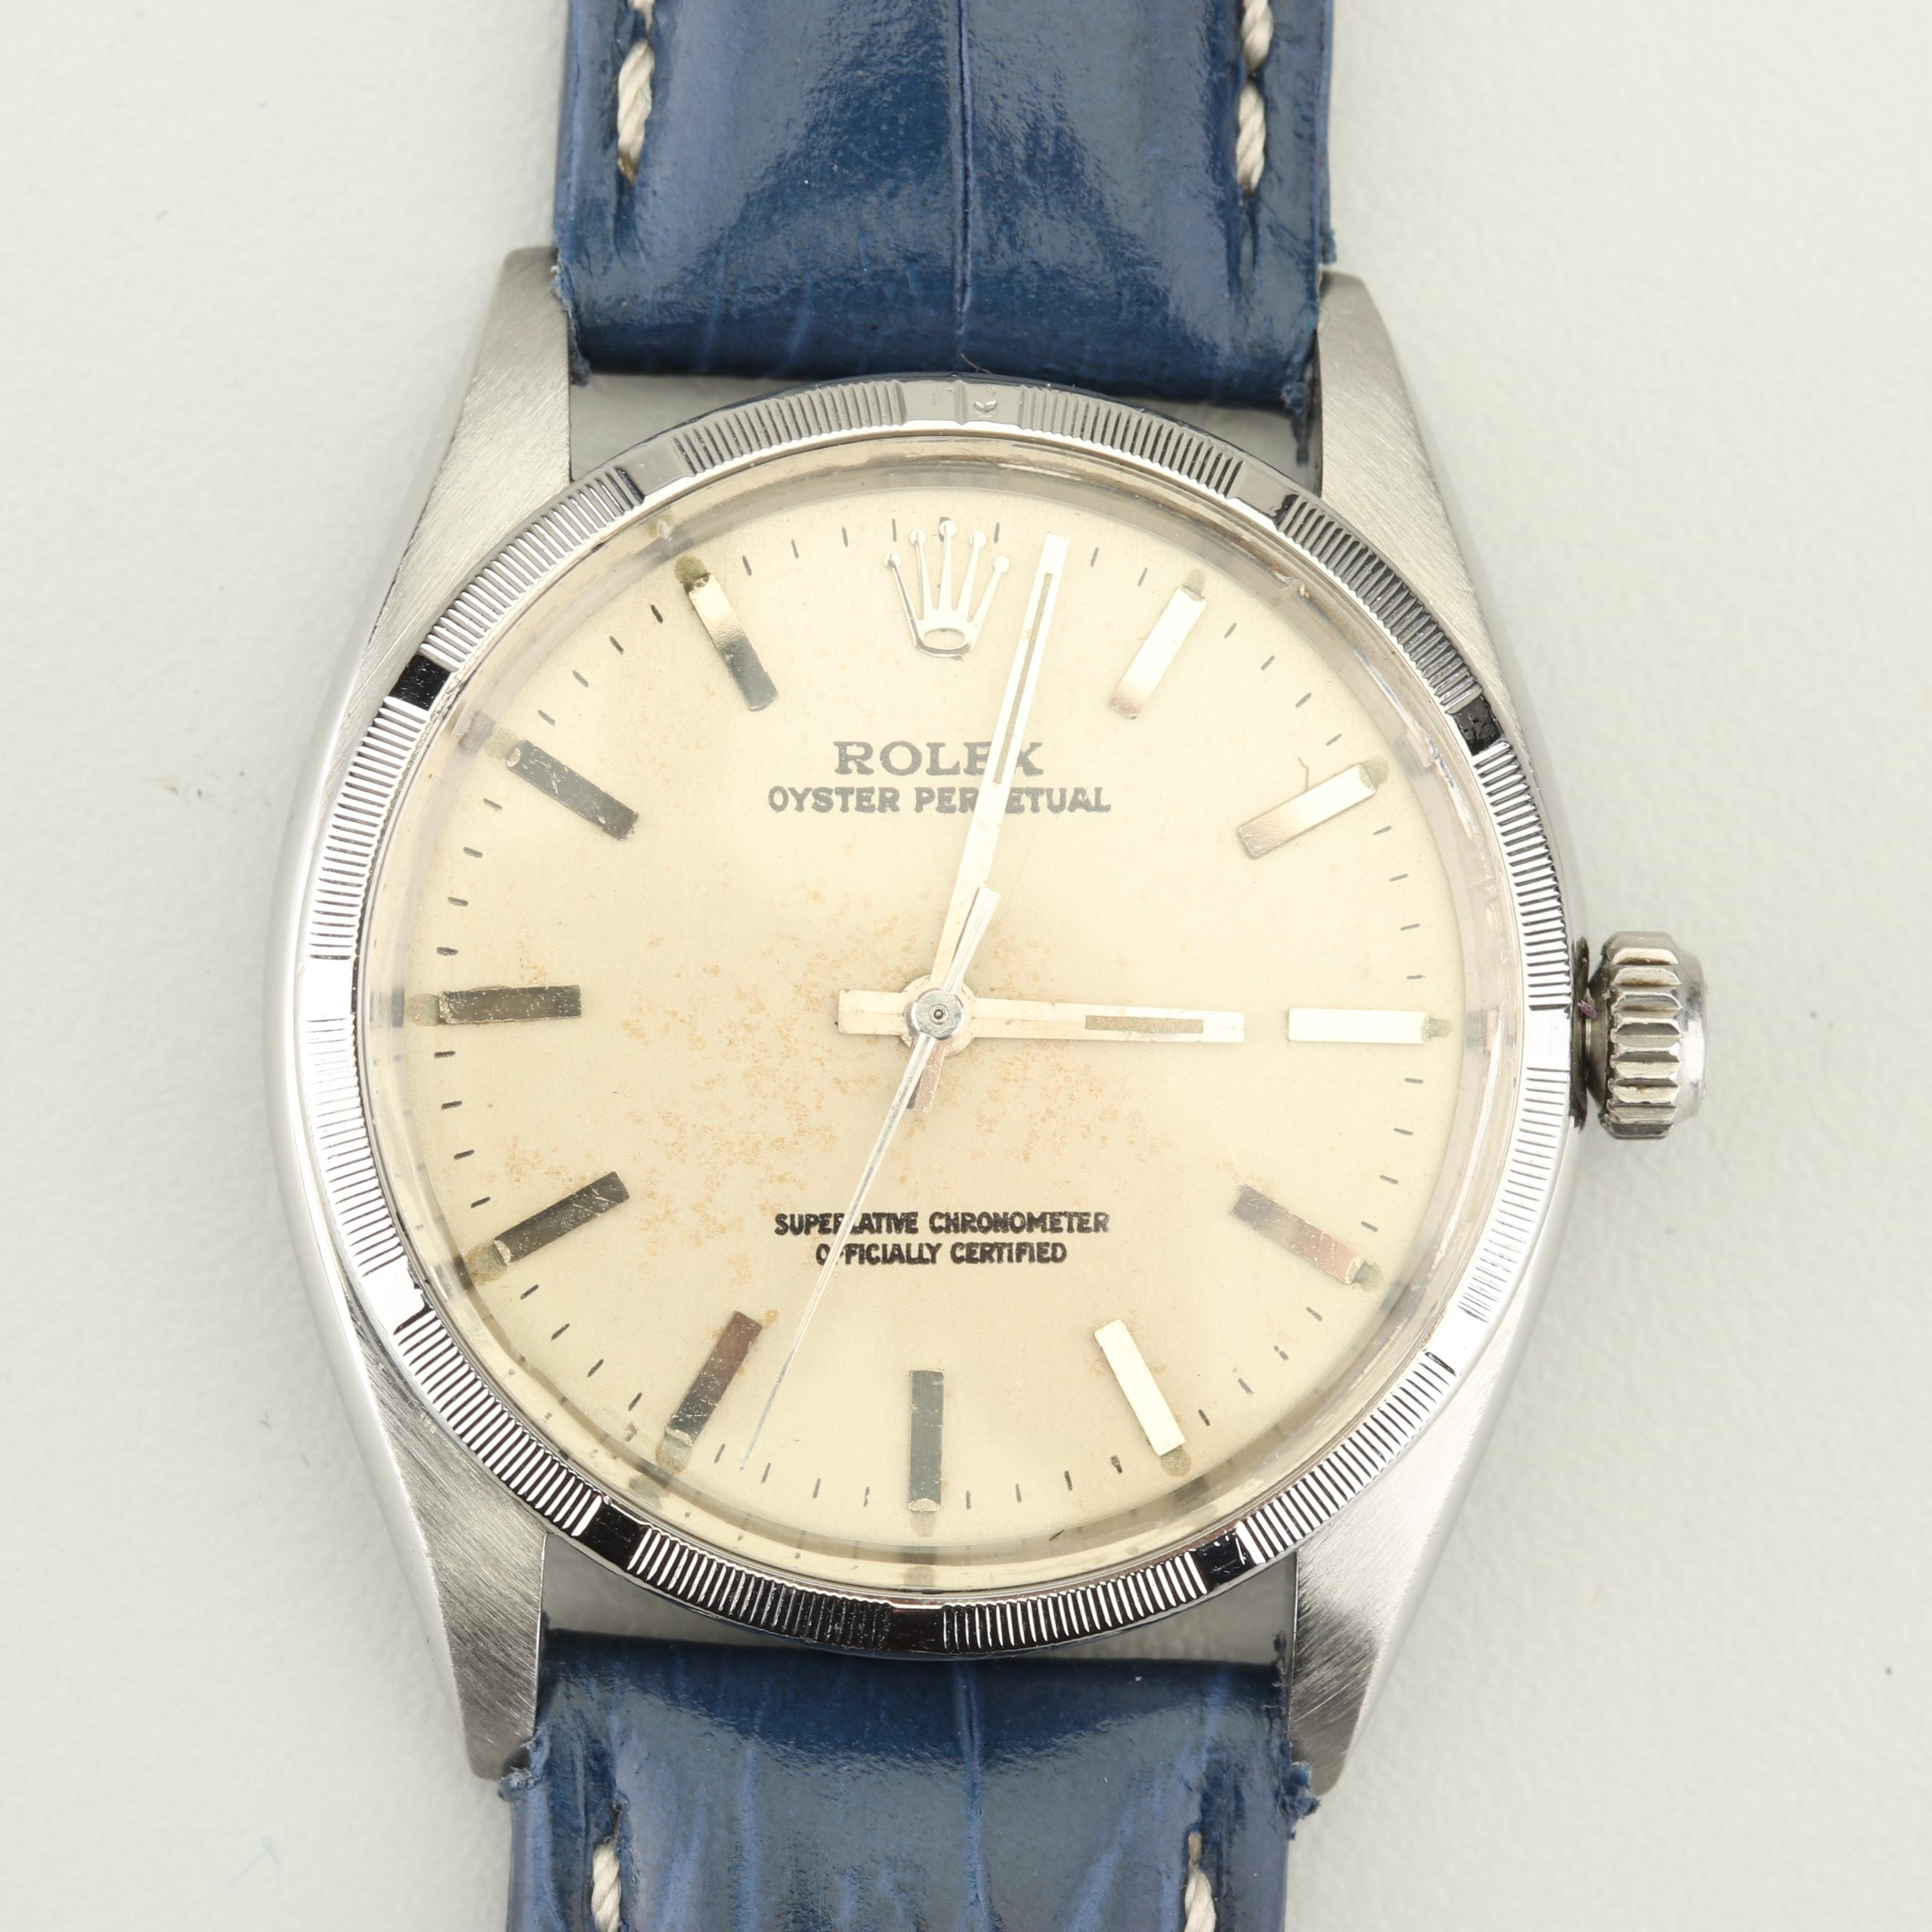 Vintage Rolex Oyster Perpetual Wristwatch